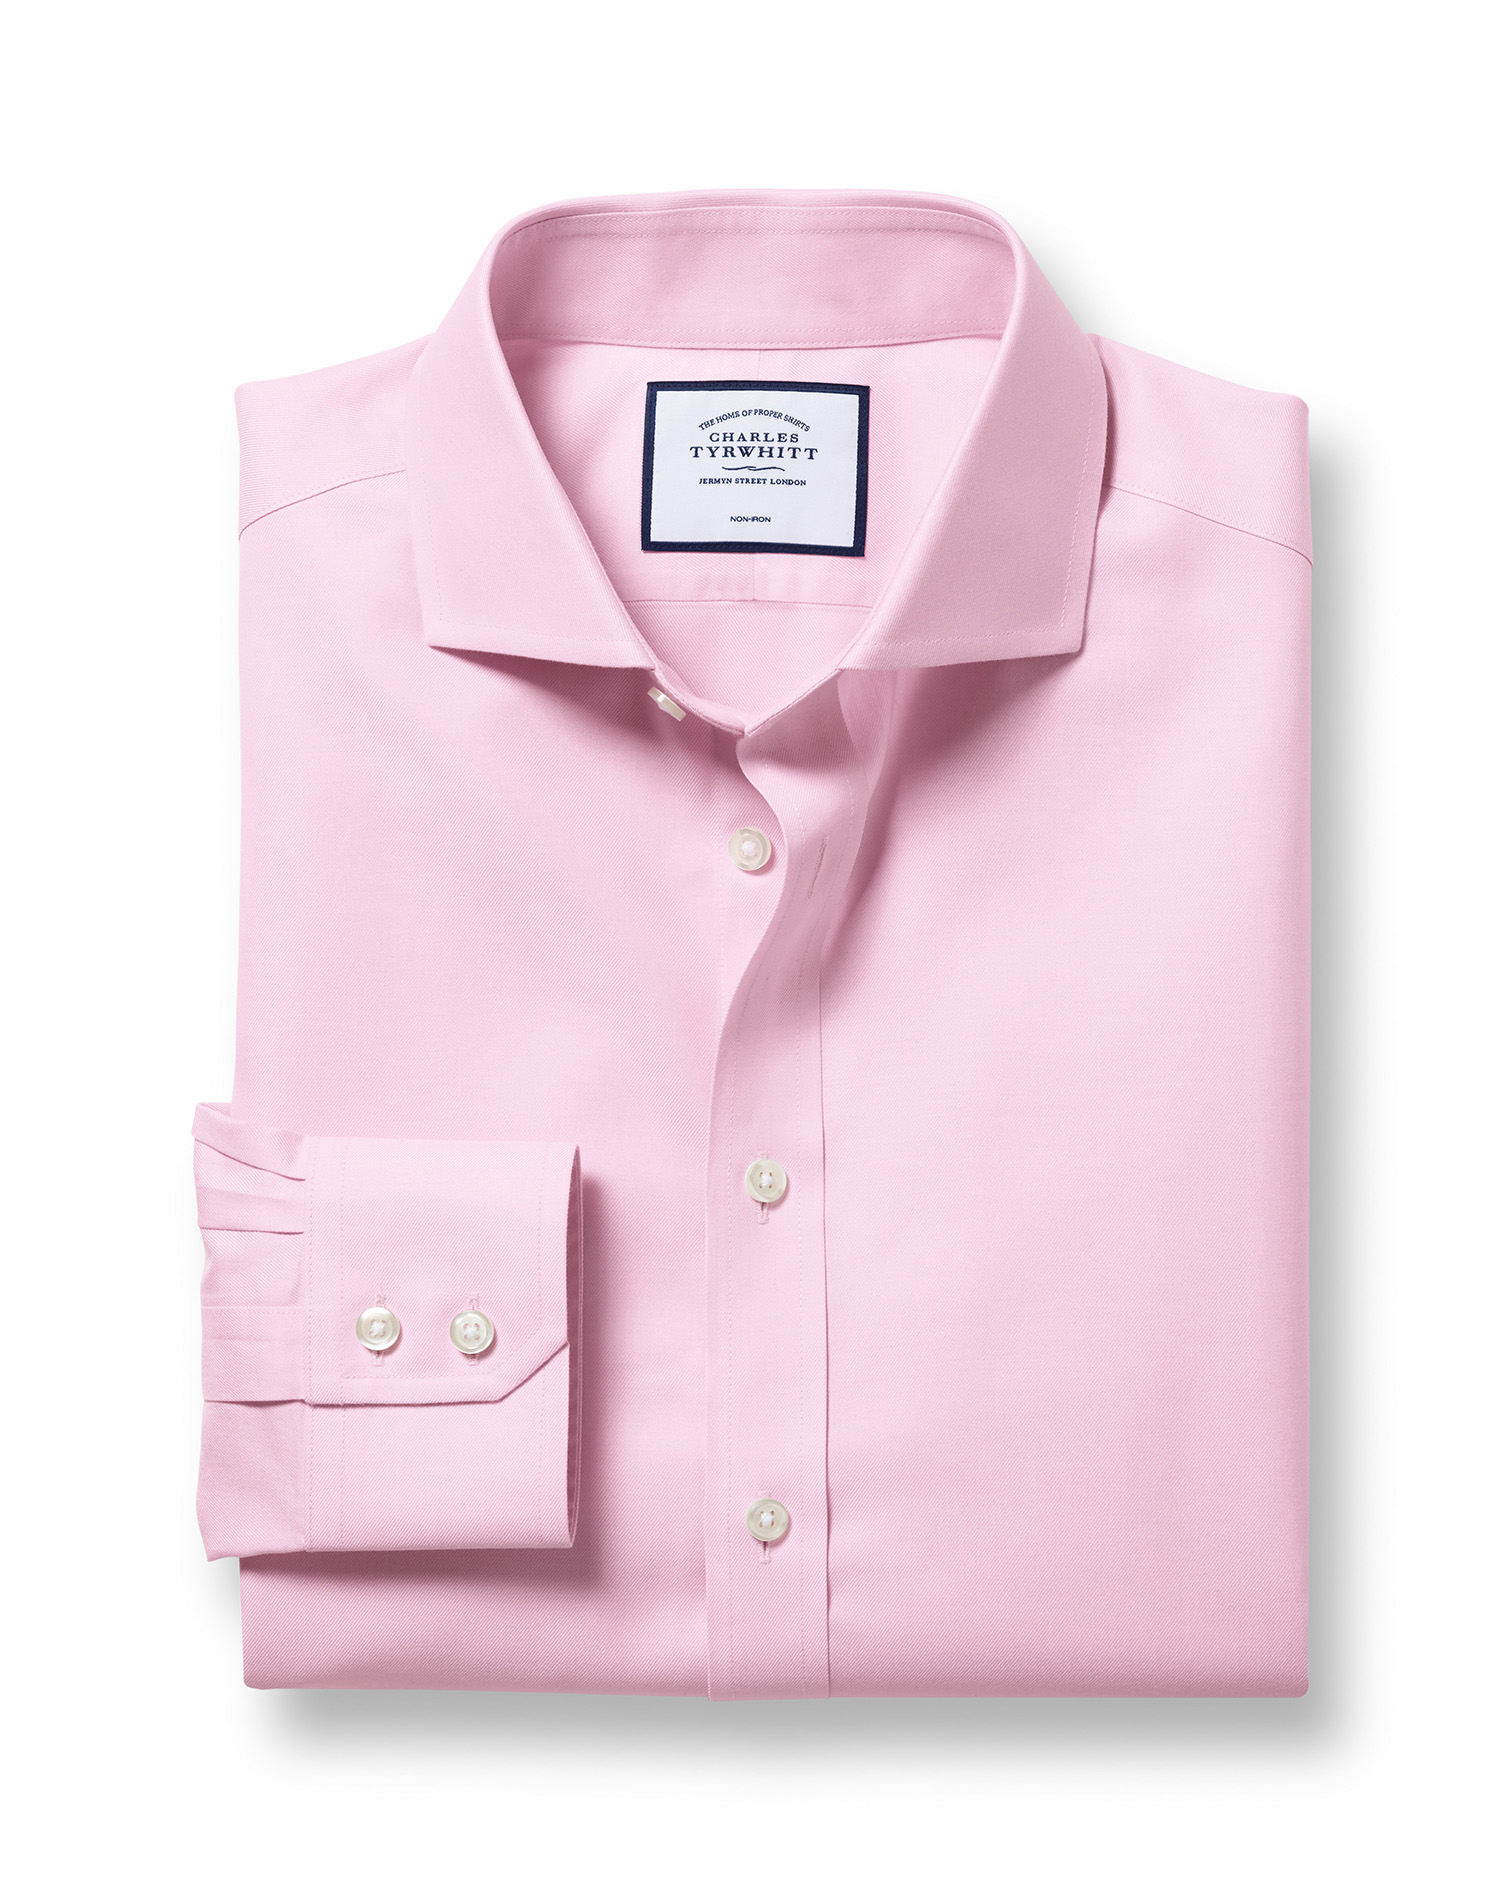 Extra Slim Fit Cutaway Collar Pink Non-Iron Twill Cotton Formal Shirt Single Cuff Size 17.5/34 by Ch